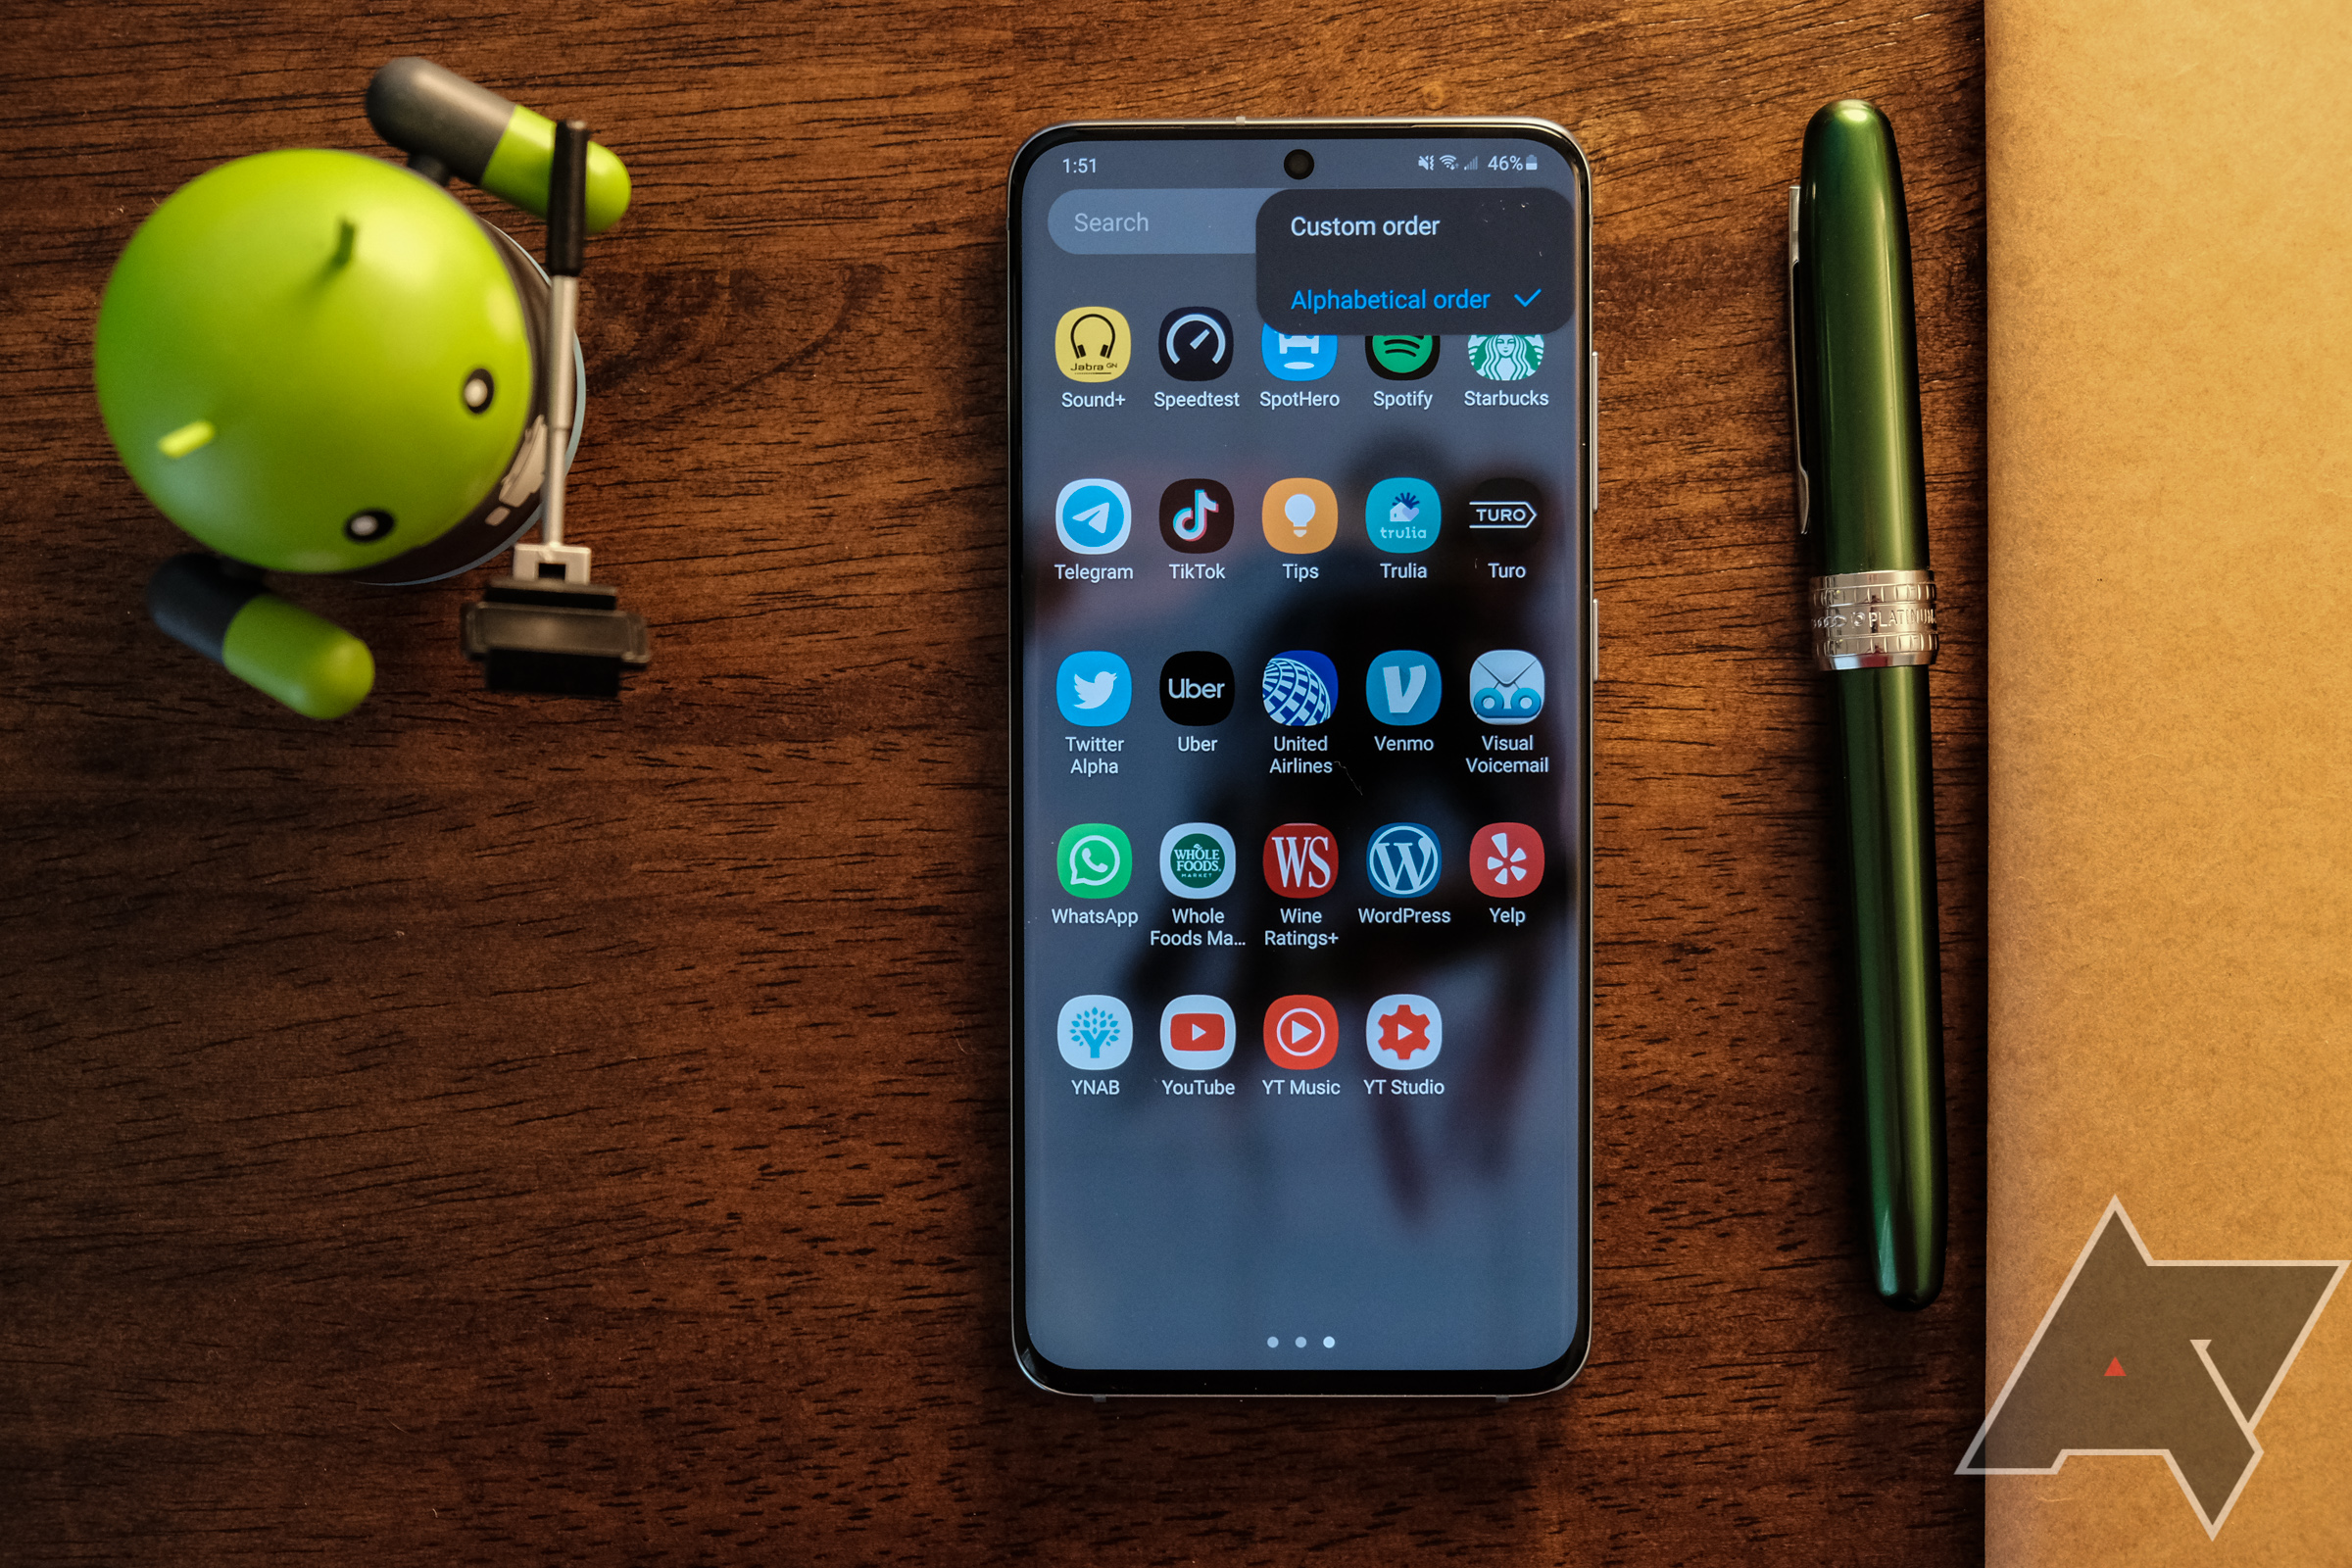 The US Samsung Galaxy S20+ hits its lowest price yet of $842 ($158 off) at Amazon